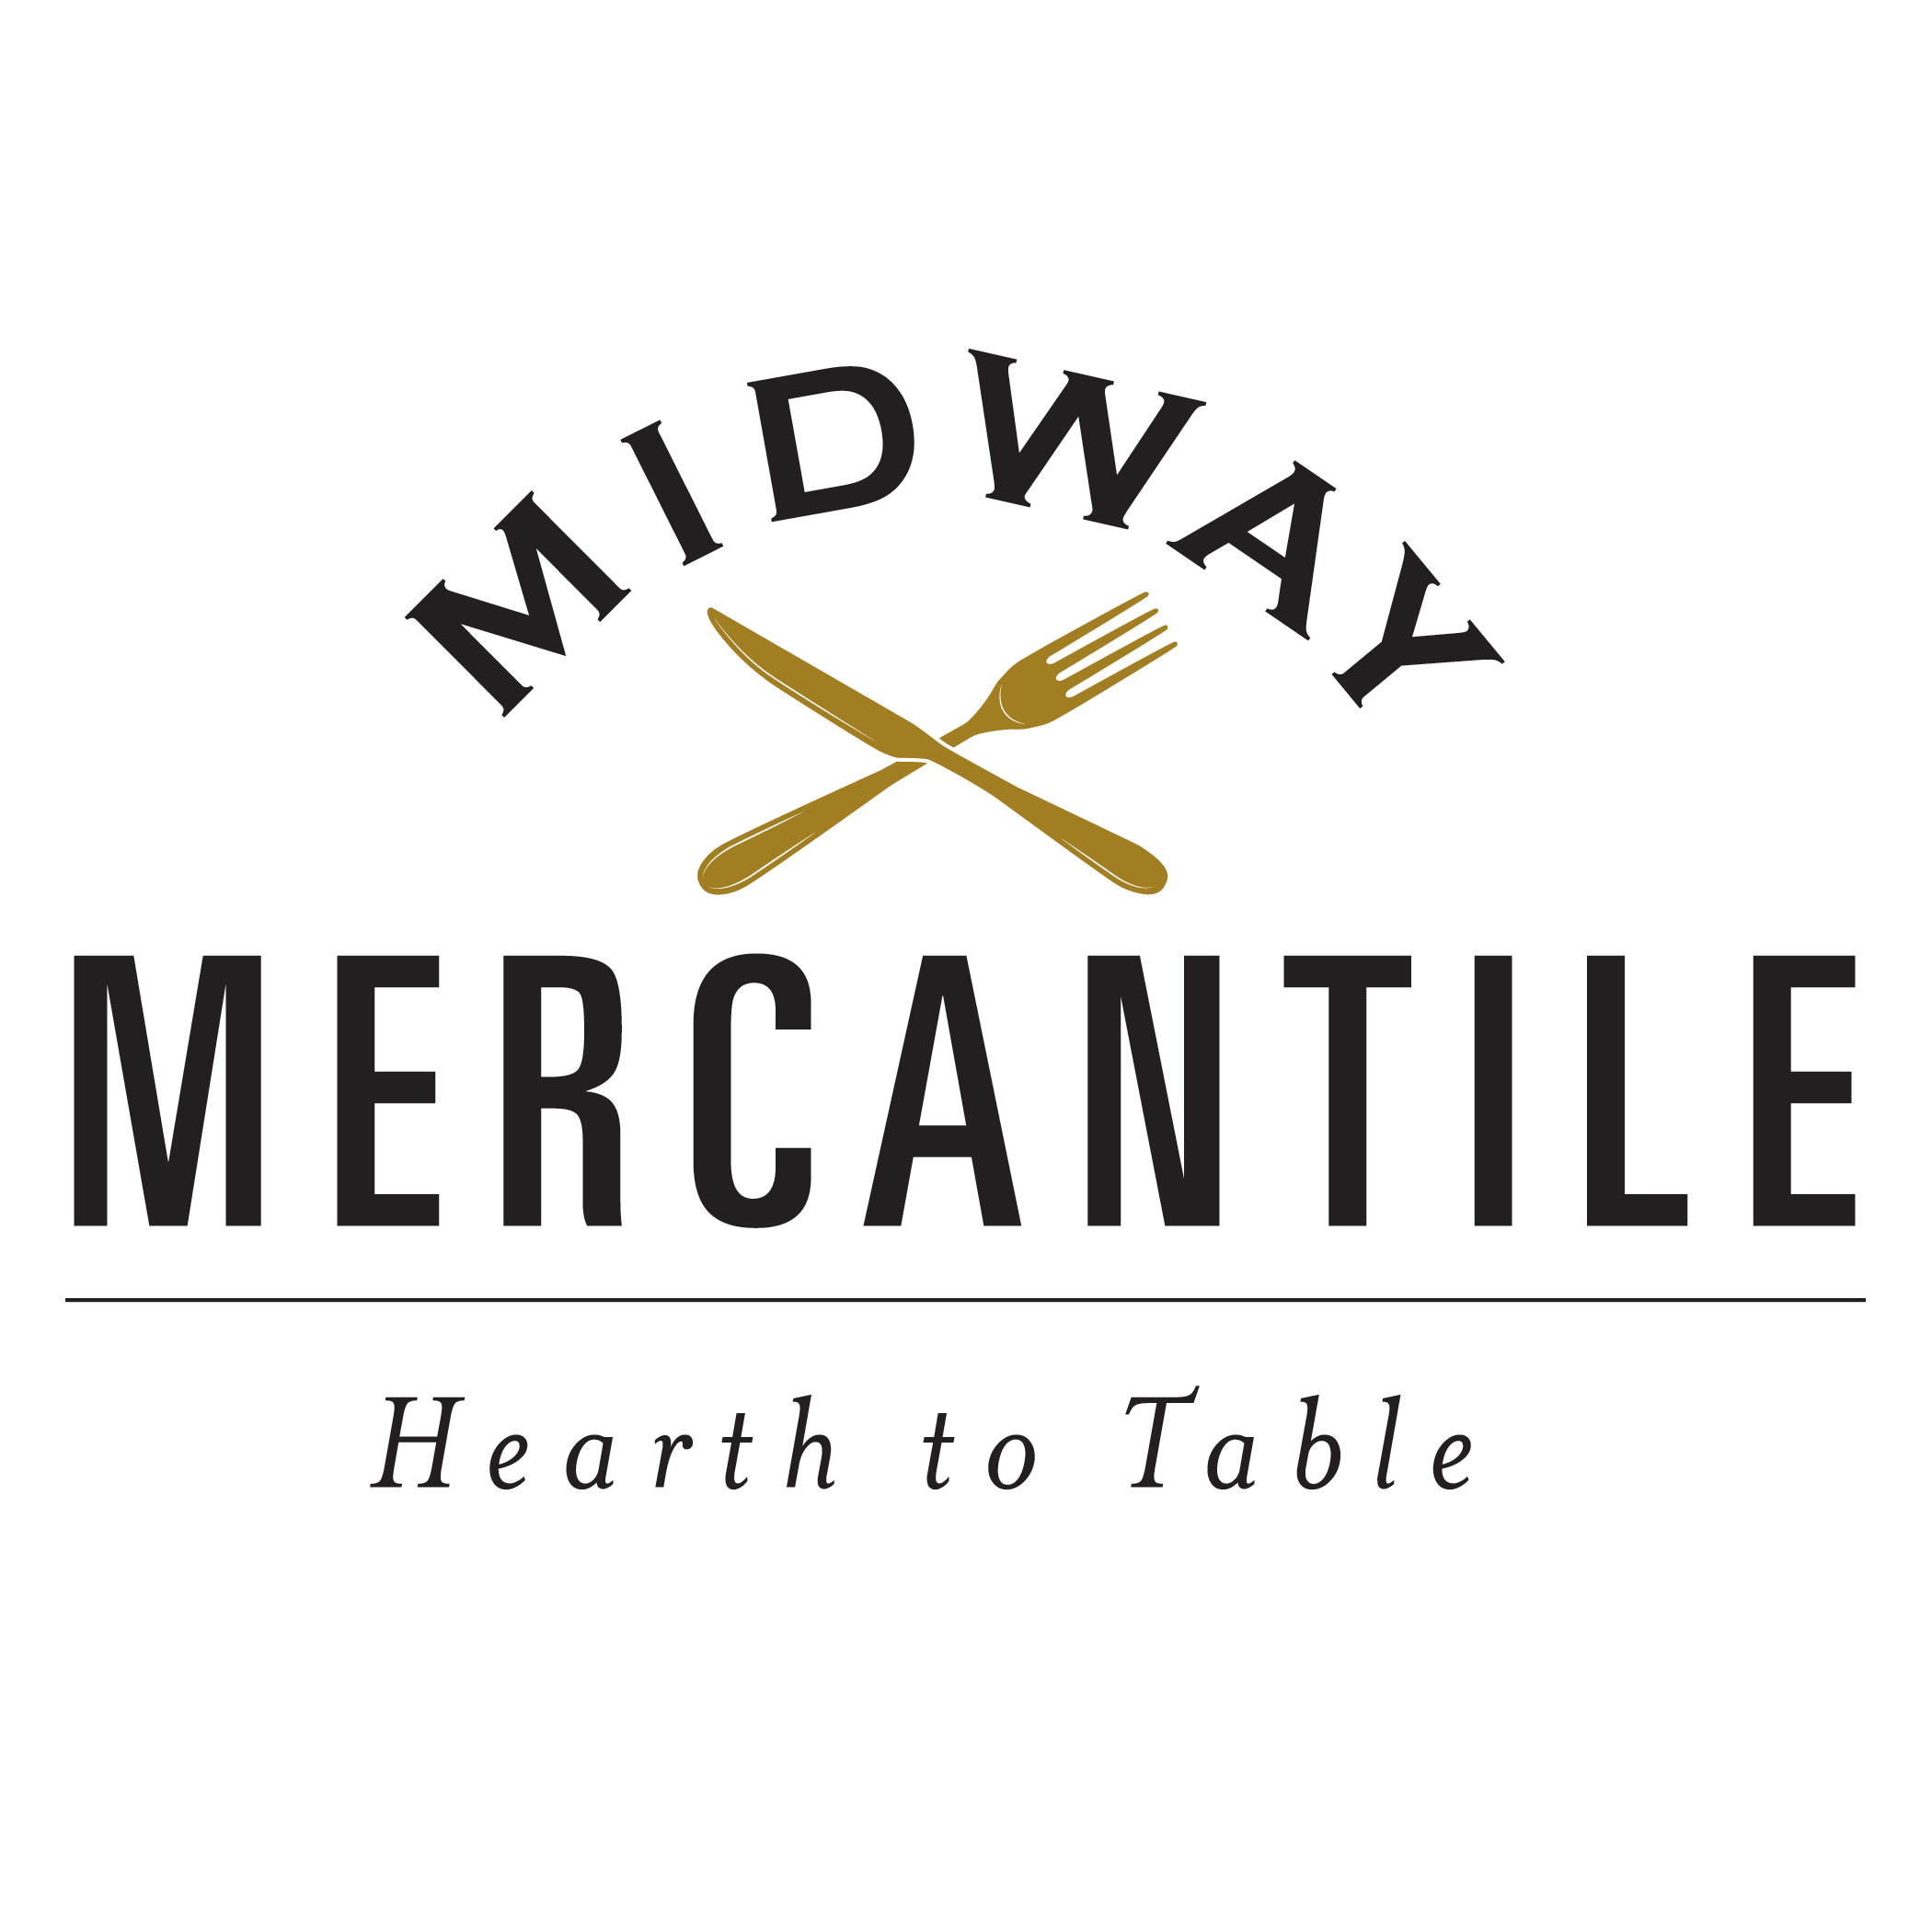 Midway Mercantile Restaurant image 10